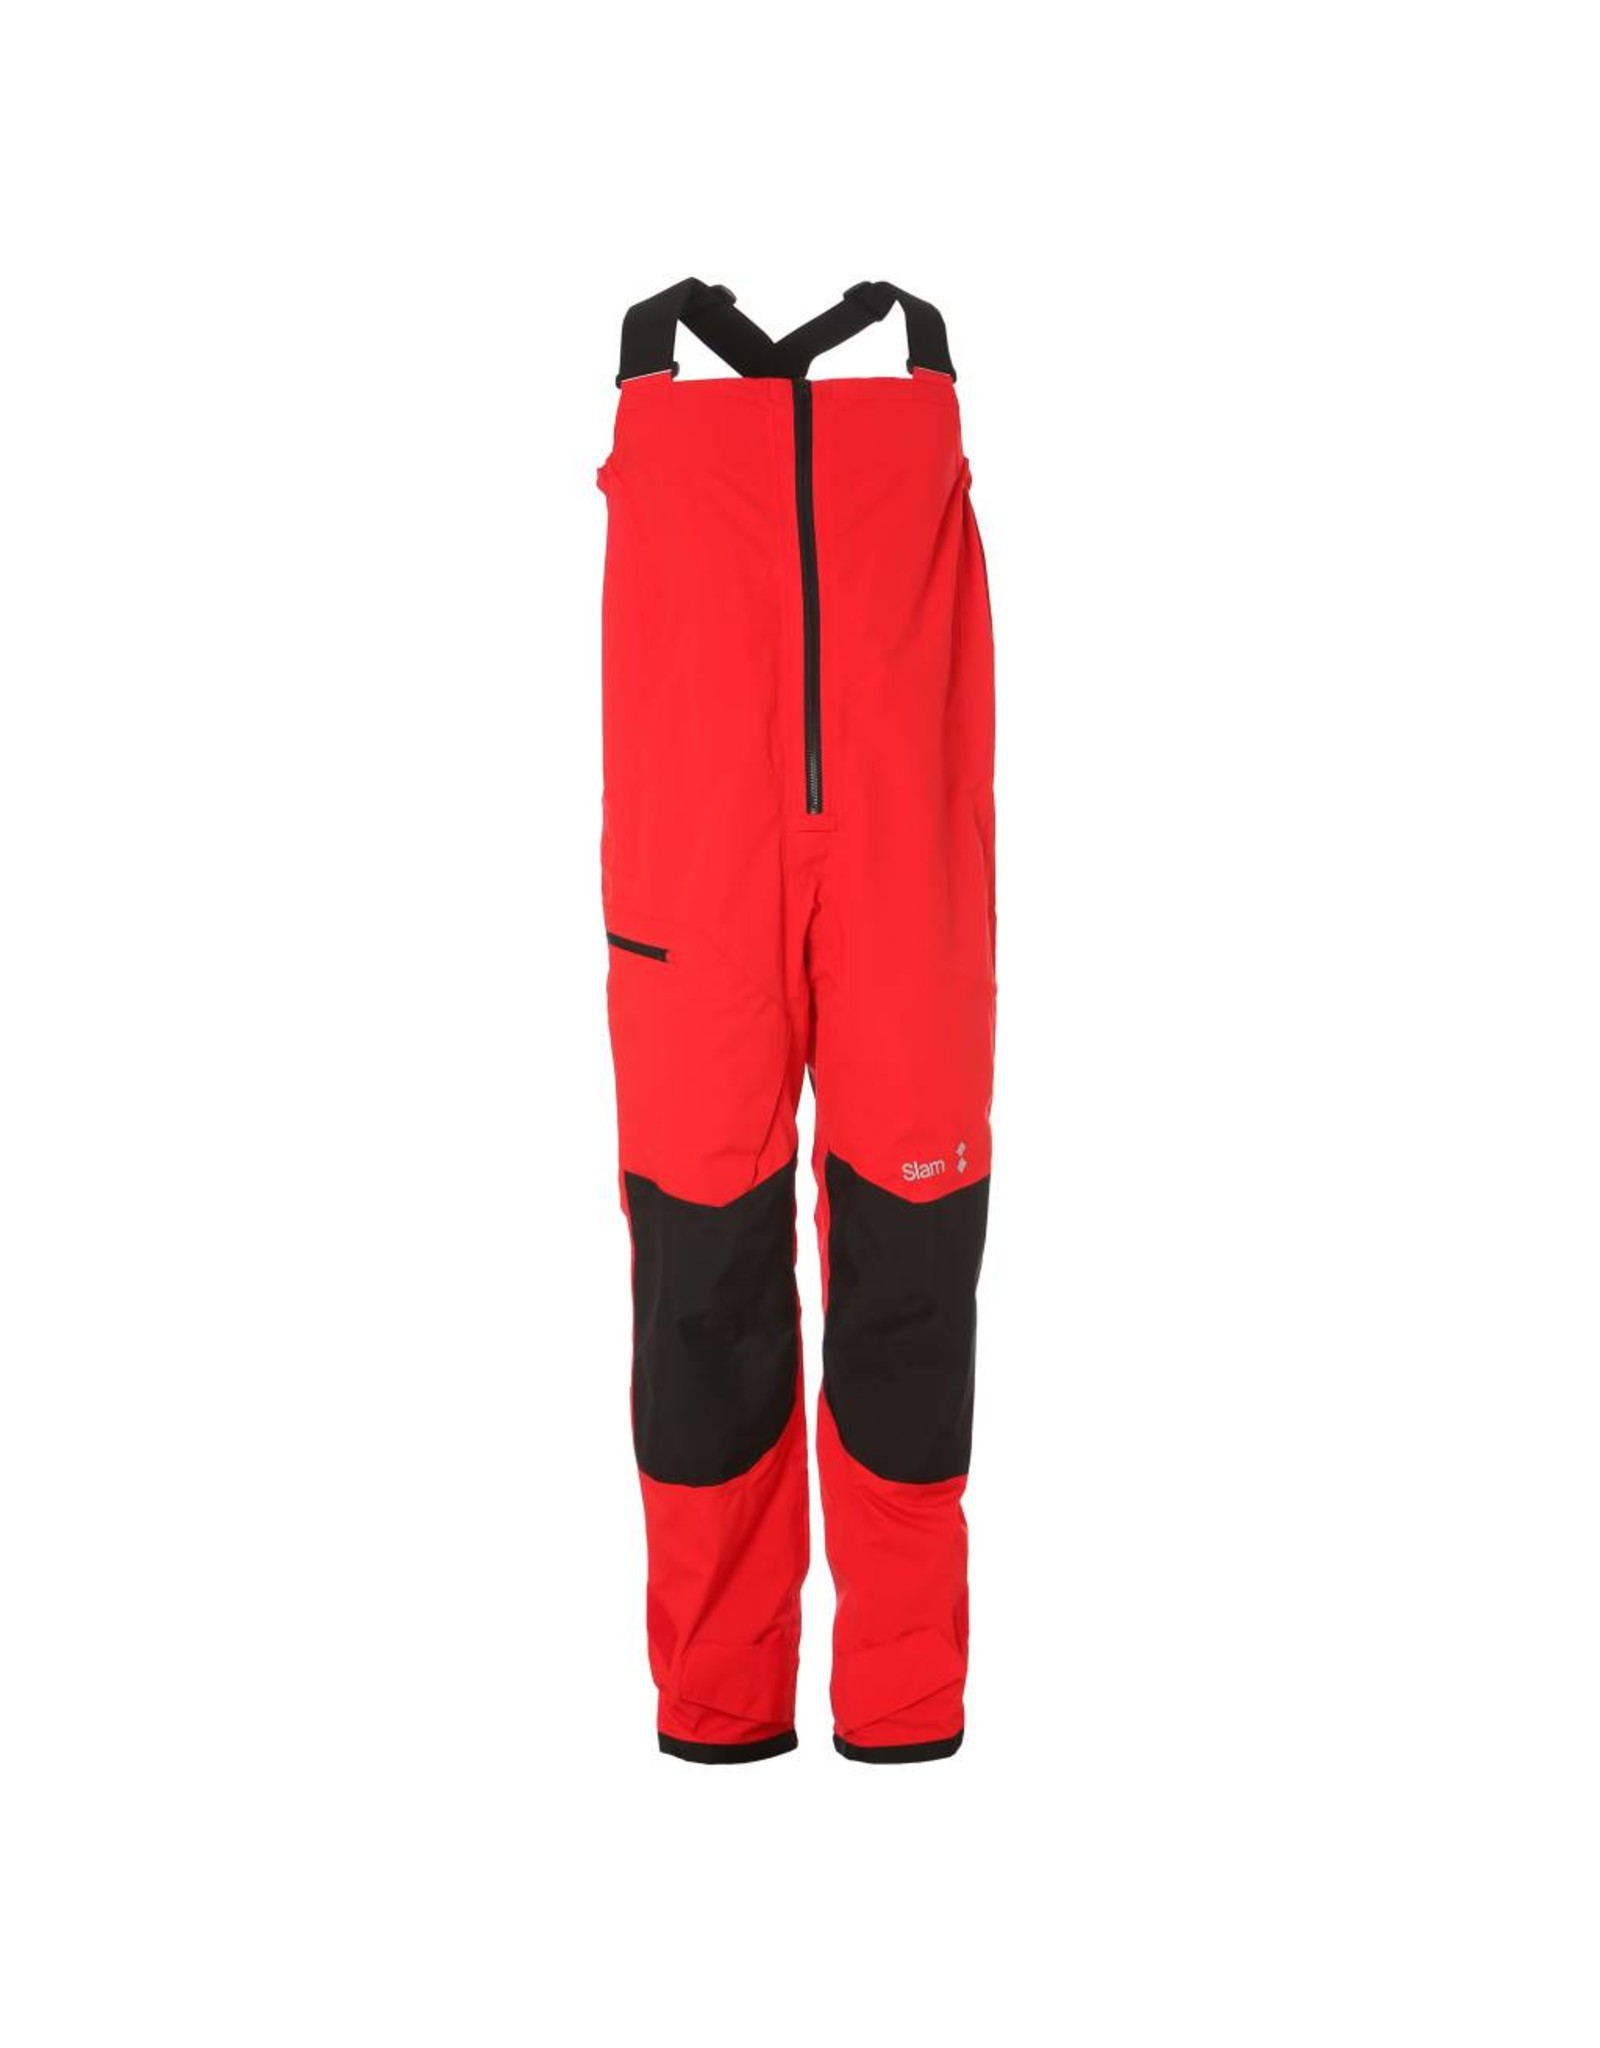 Slam WIN-D 1 Sailing Bibs - Red (625)